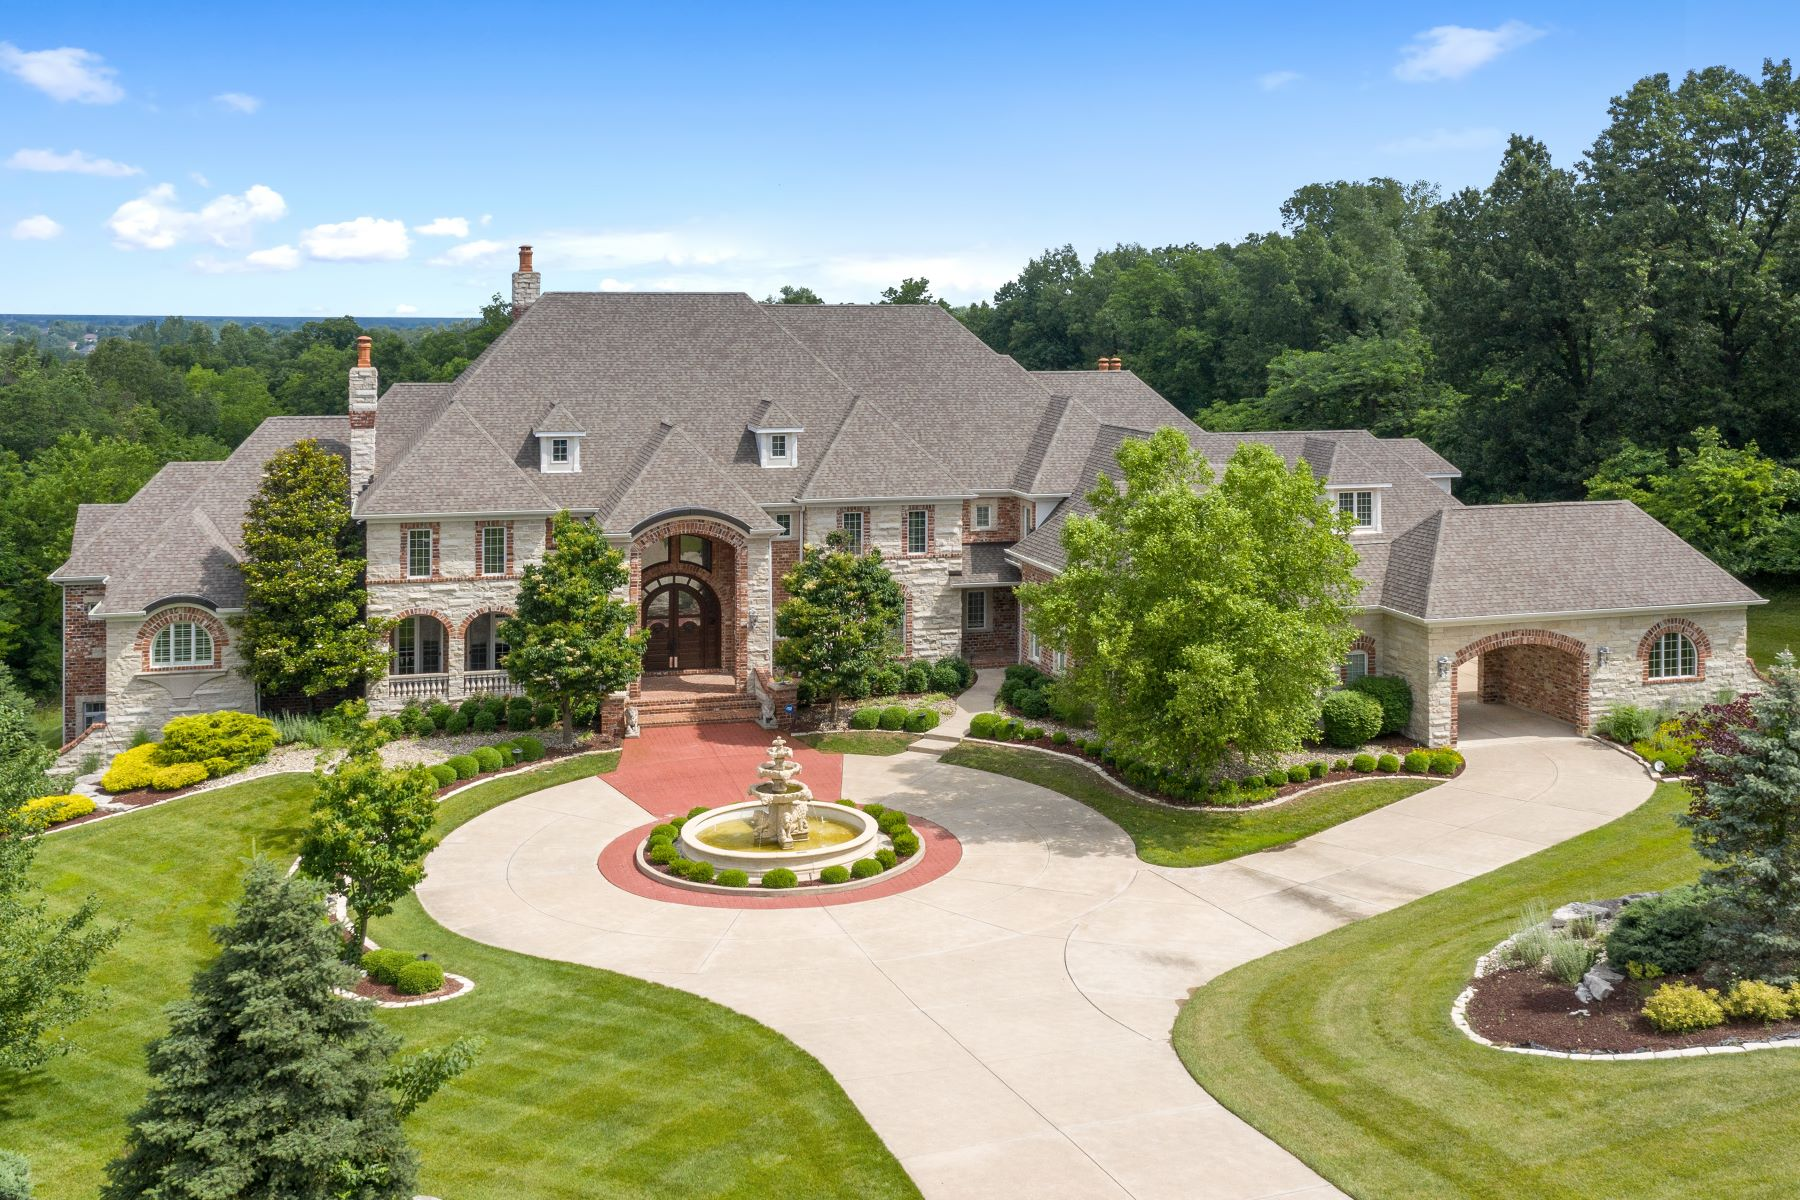 Single Family Homes for Sale at Stunning Sophisticated Upper Whitmoor Estate 11 Upper Whitmoor Drive Weldon Spring, Missouri 63304 United States